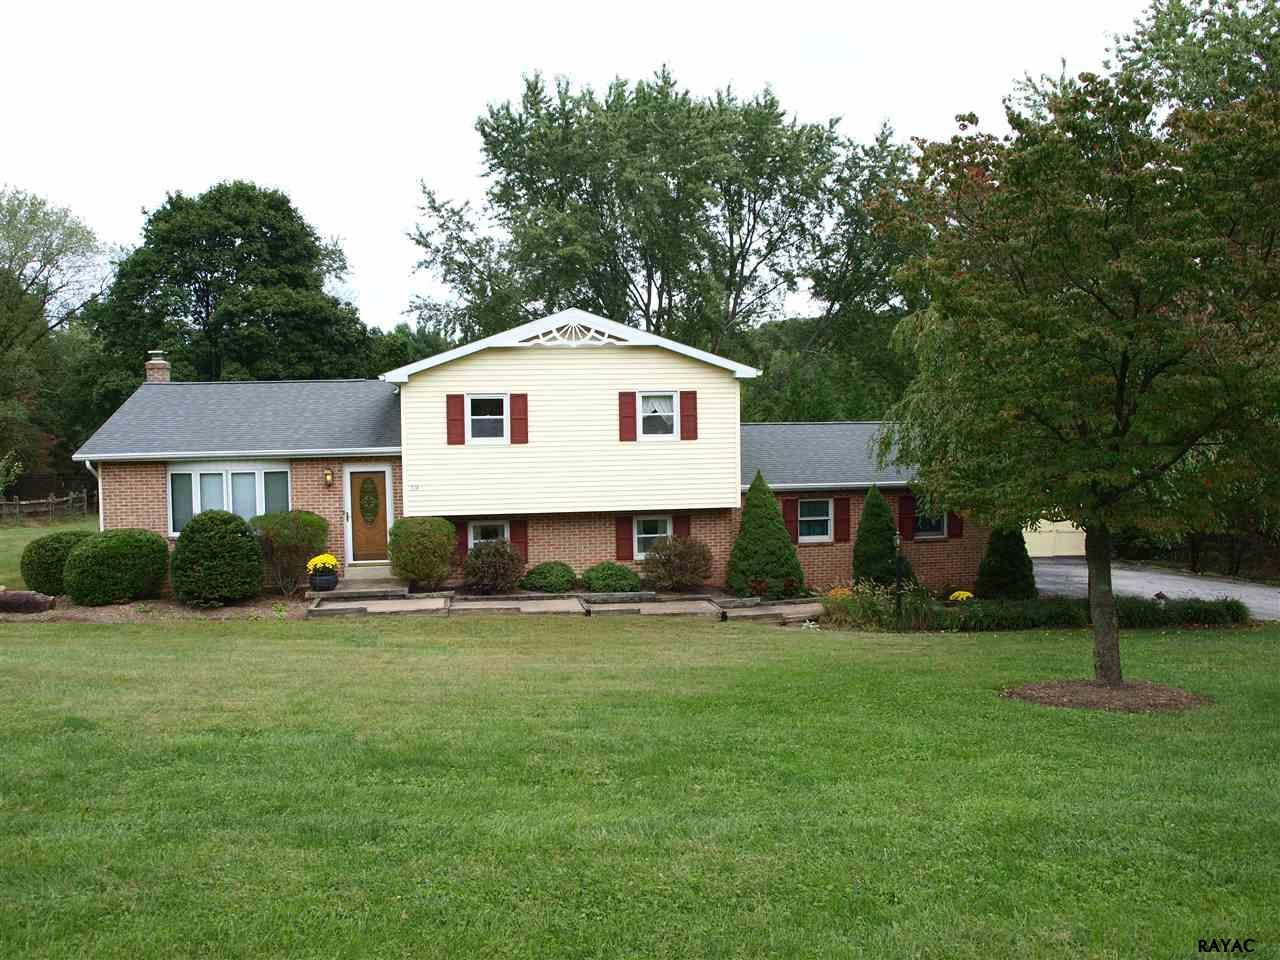 314 Forest View Dr, Delta, PA 17314